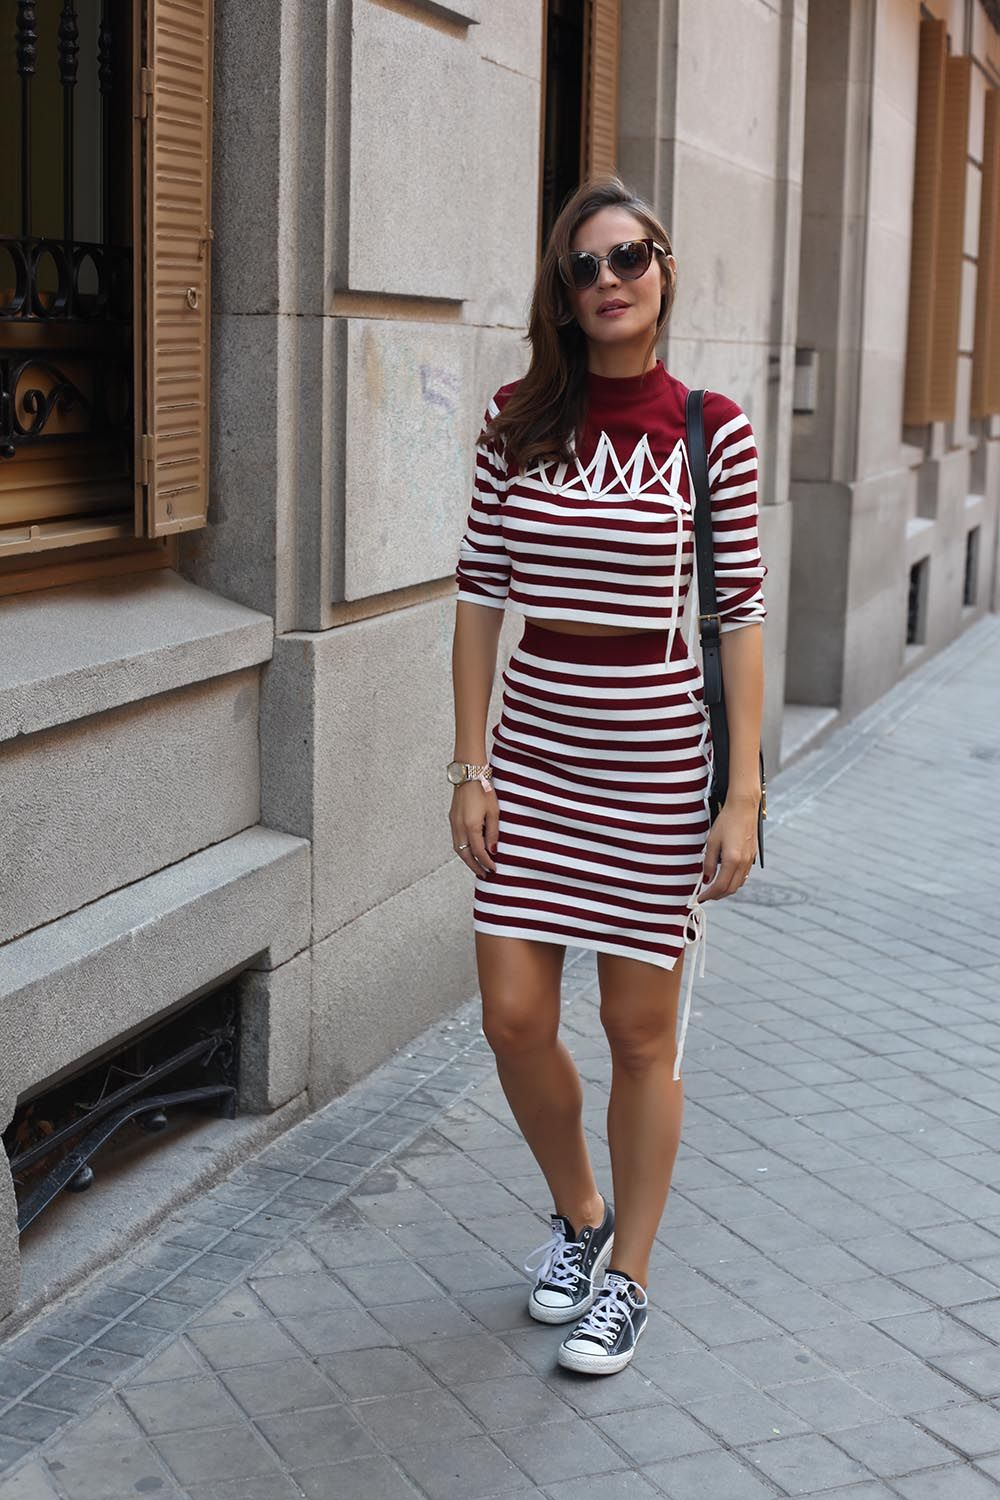 matching stripes looks - Lady Addict. Burgundy striped kintwear long sleeve and skirt+grey sneakers+black shoulder bag+sunglasses. Late Summer Outfit 2016